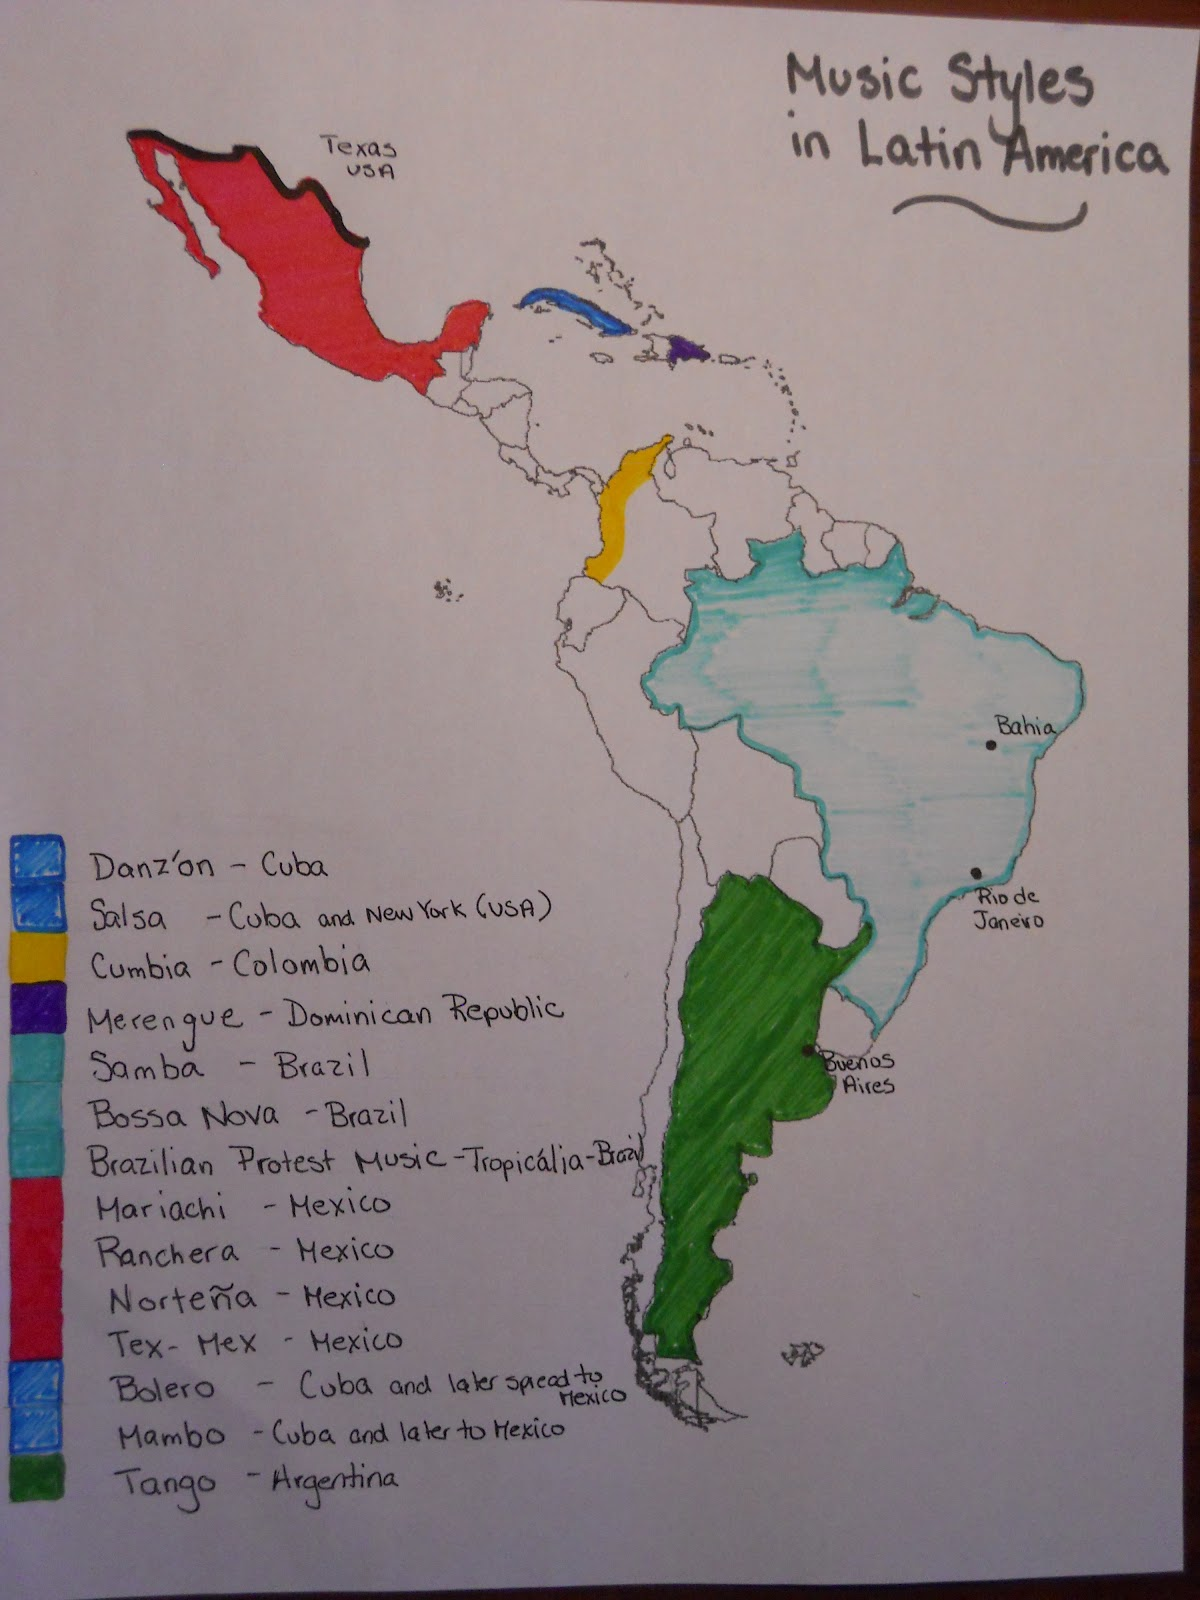 Music Styles in Latin America Map   alaina kelly on missouri city map, caldwell map, manor map, plano map, katy map, nacogdoches map, galveston map, temple map, lackland map, kingwood map, wichita falls map, iran map, weslaco map, granbury map, kelly new mexico, andrews afb map, schertz map, league city map, new braunfels map, port isabel map,